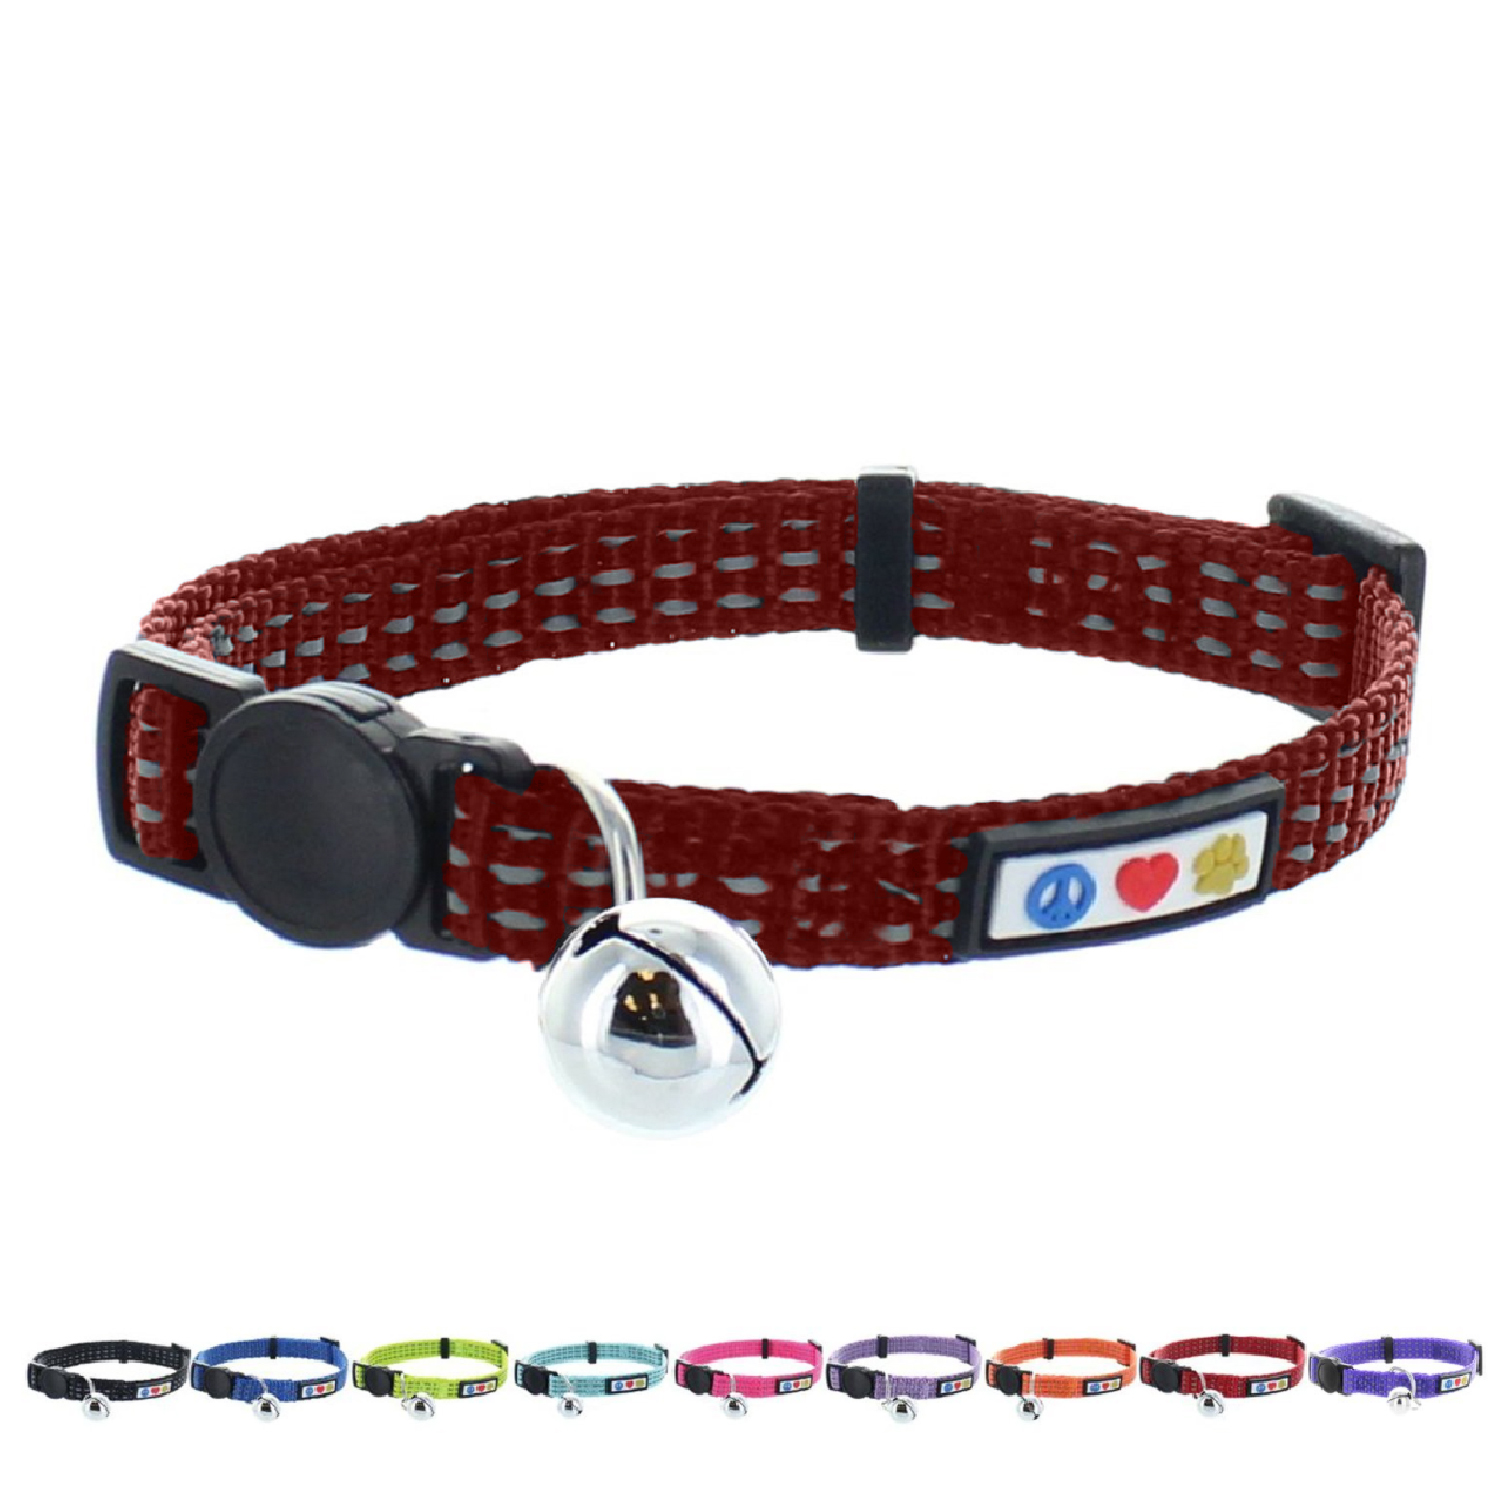 Pawtitas Reflective Cat Collar with Safety Buckle and Bell